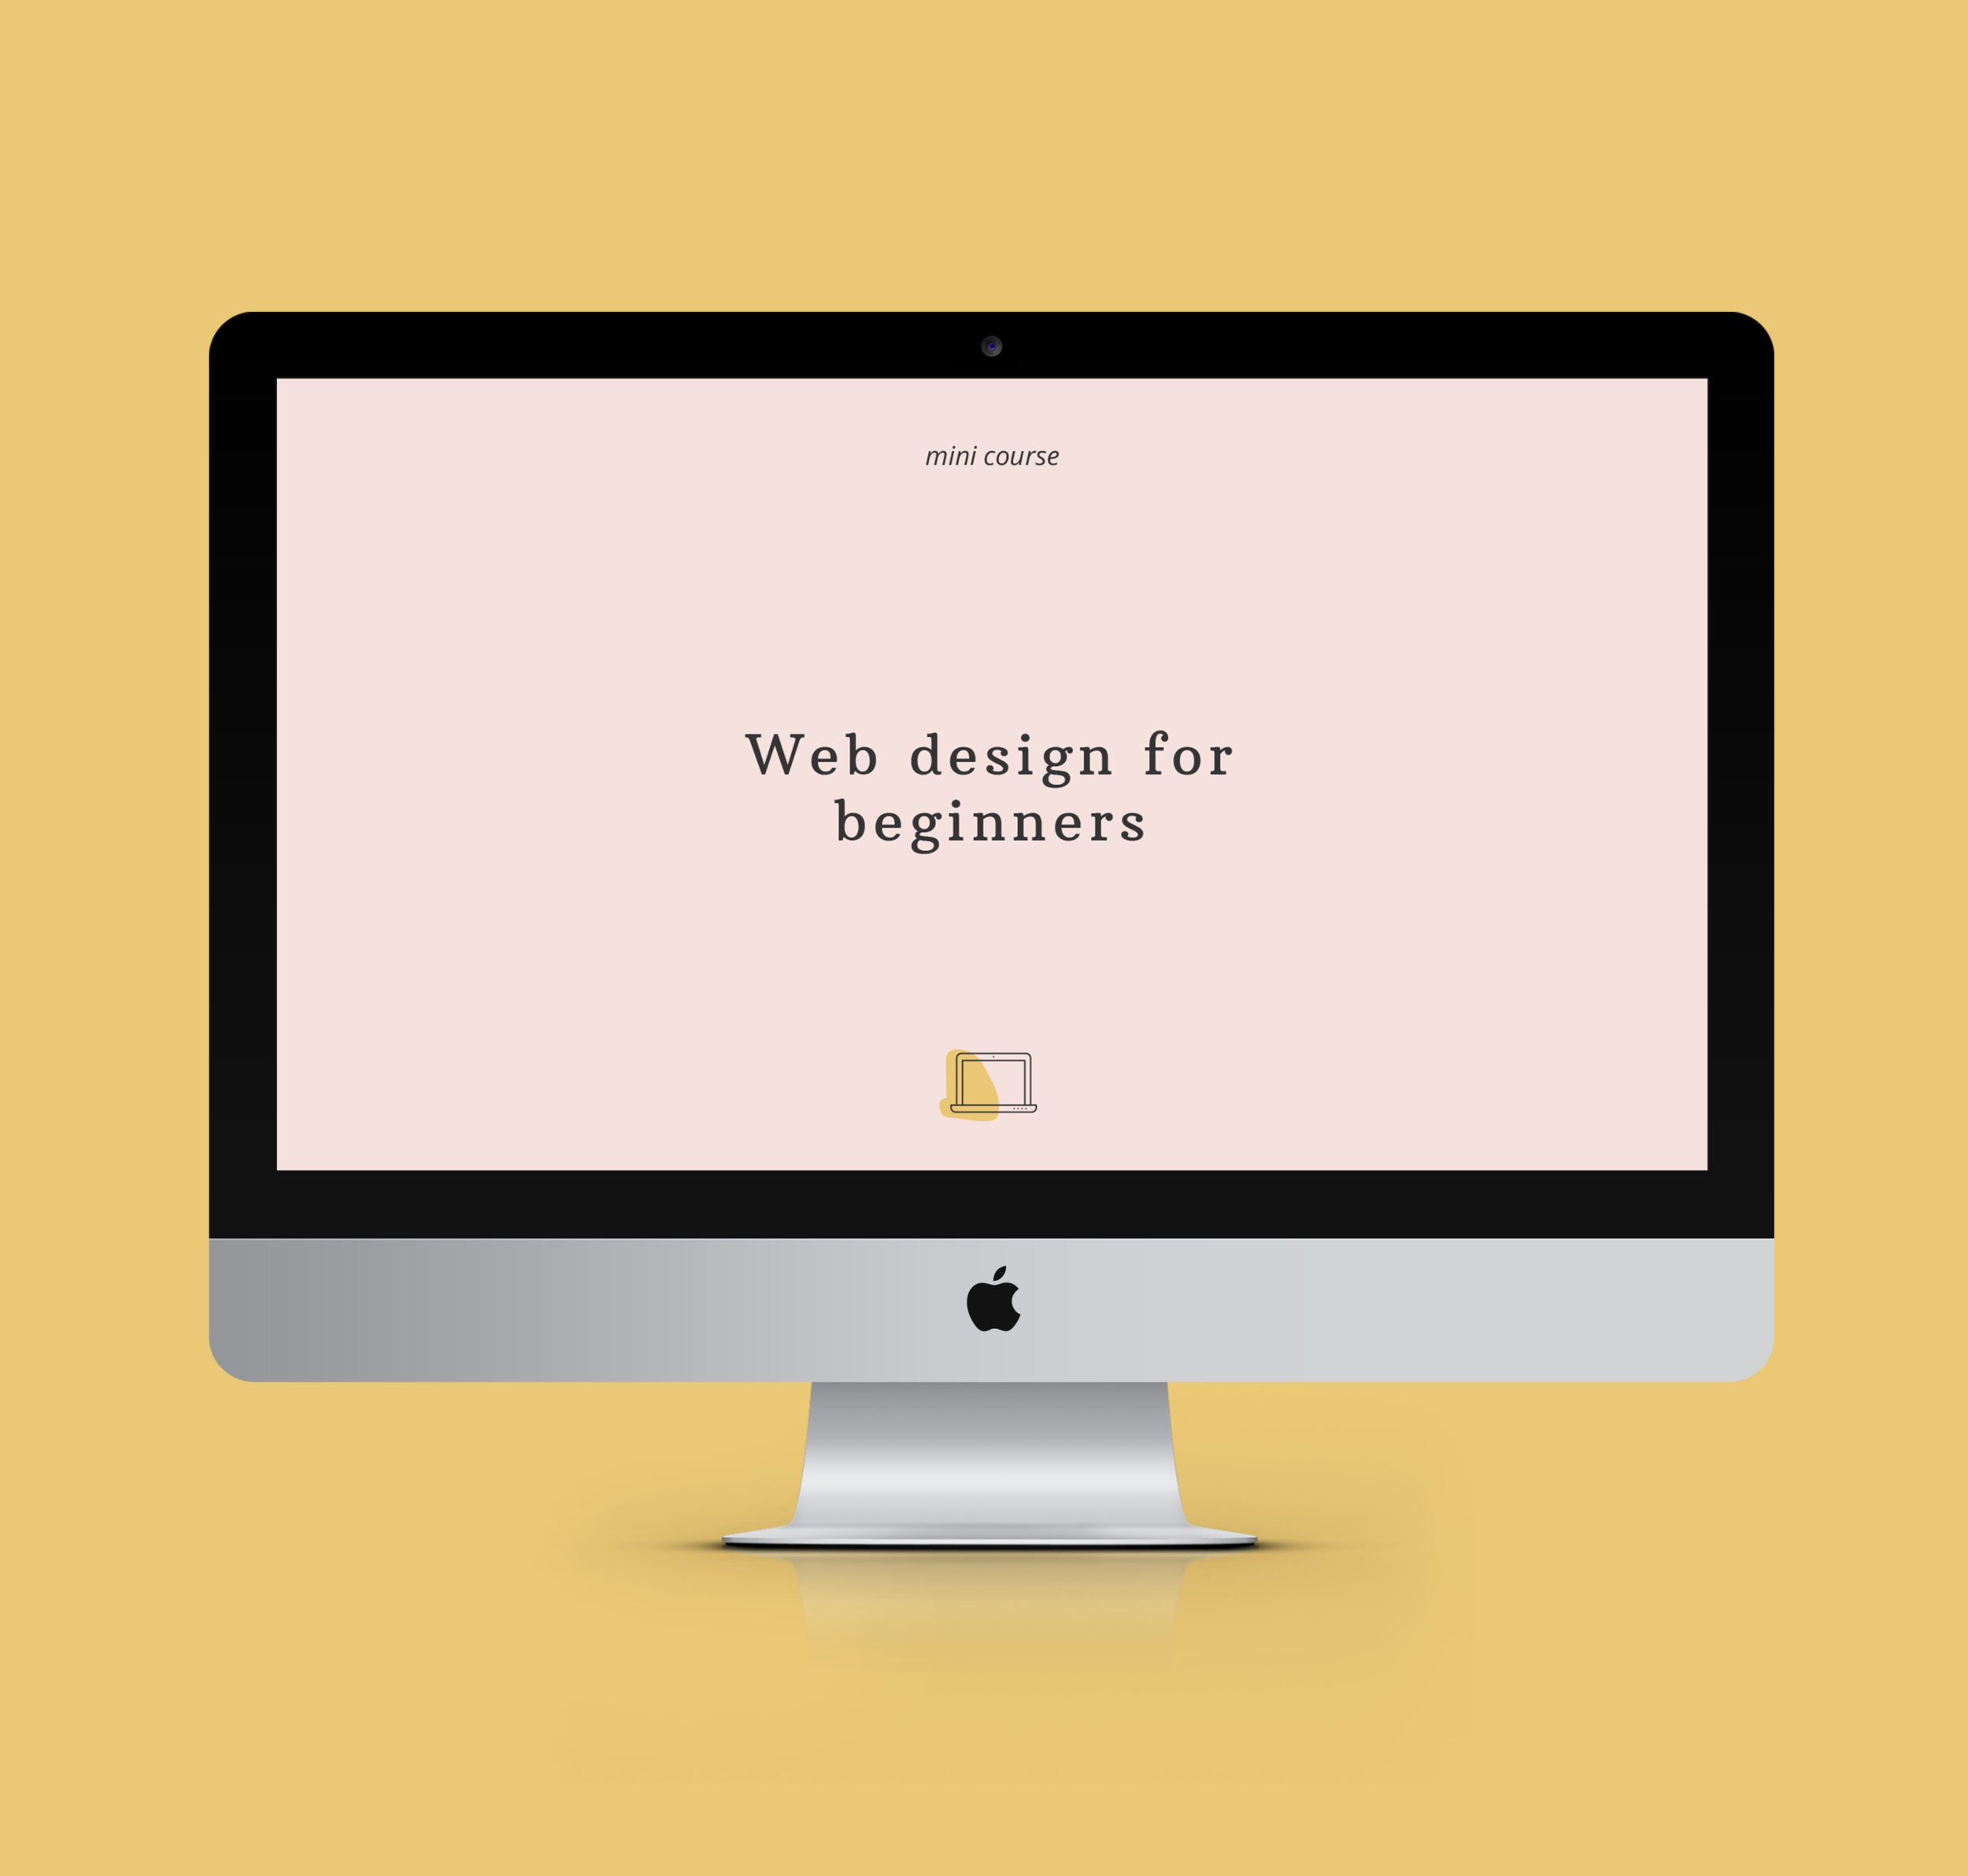 Graphic of an iMac on a yellow a background with the title of the online course Web design for beginners